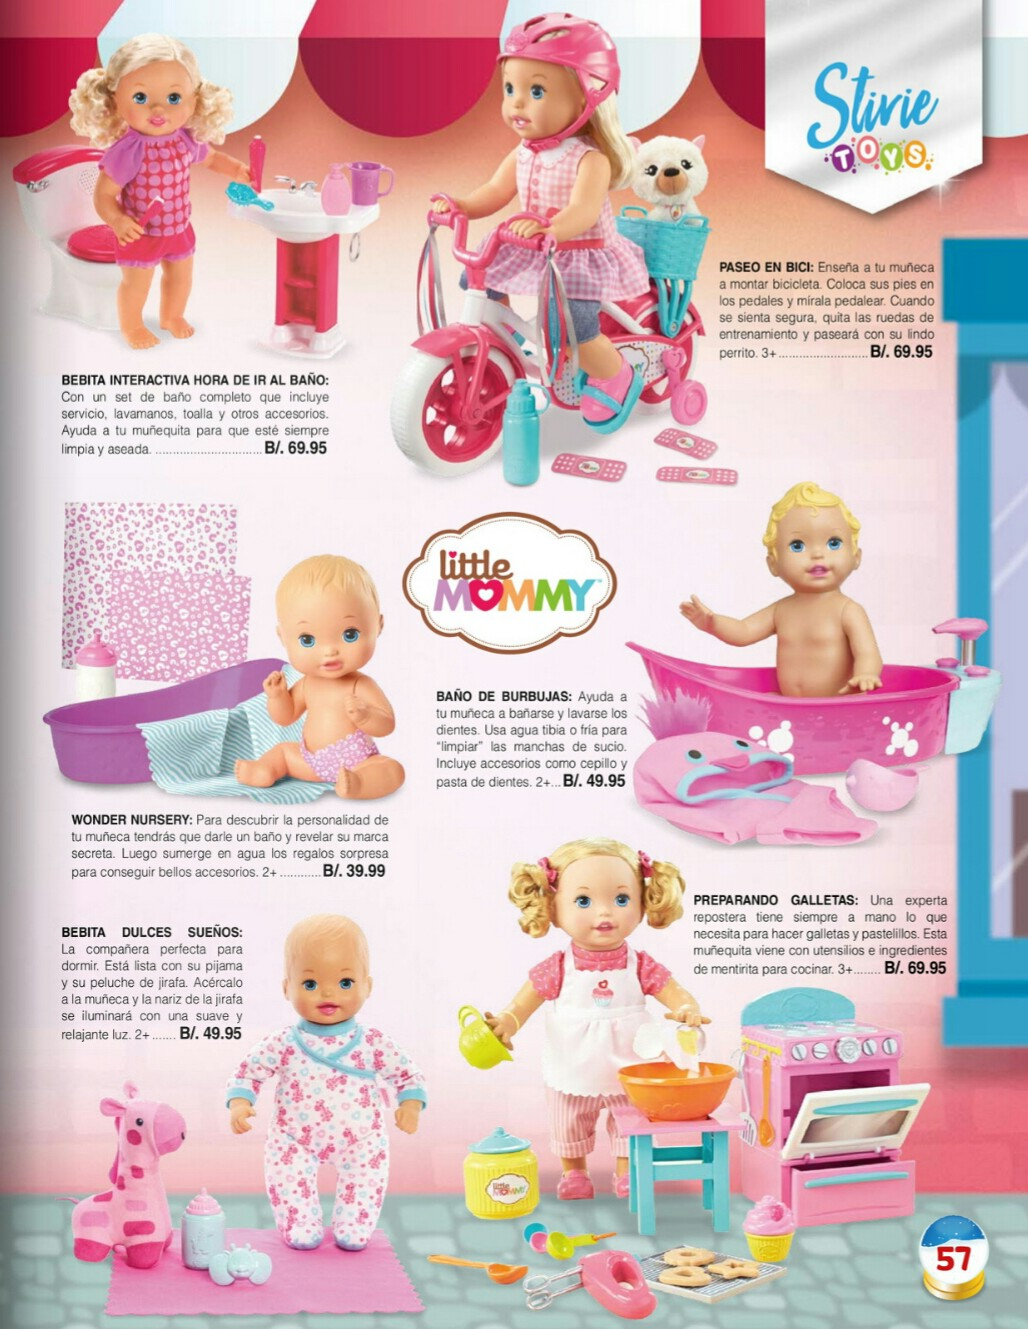 Catalogo juguetes Stivie toys 2018 p57